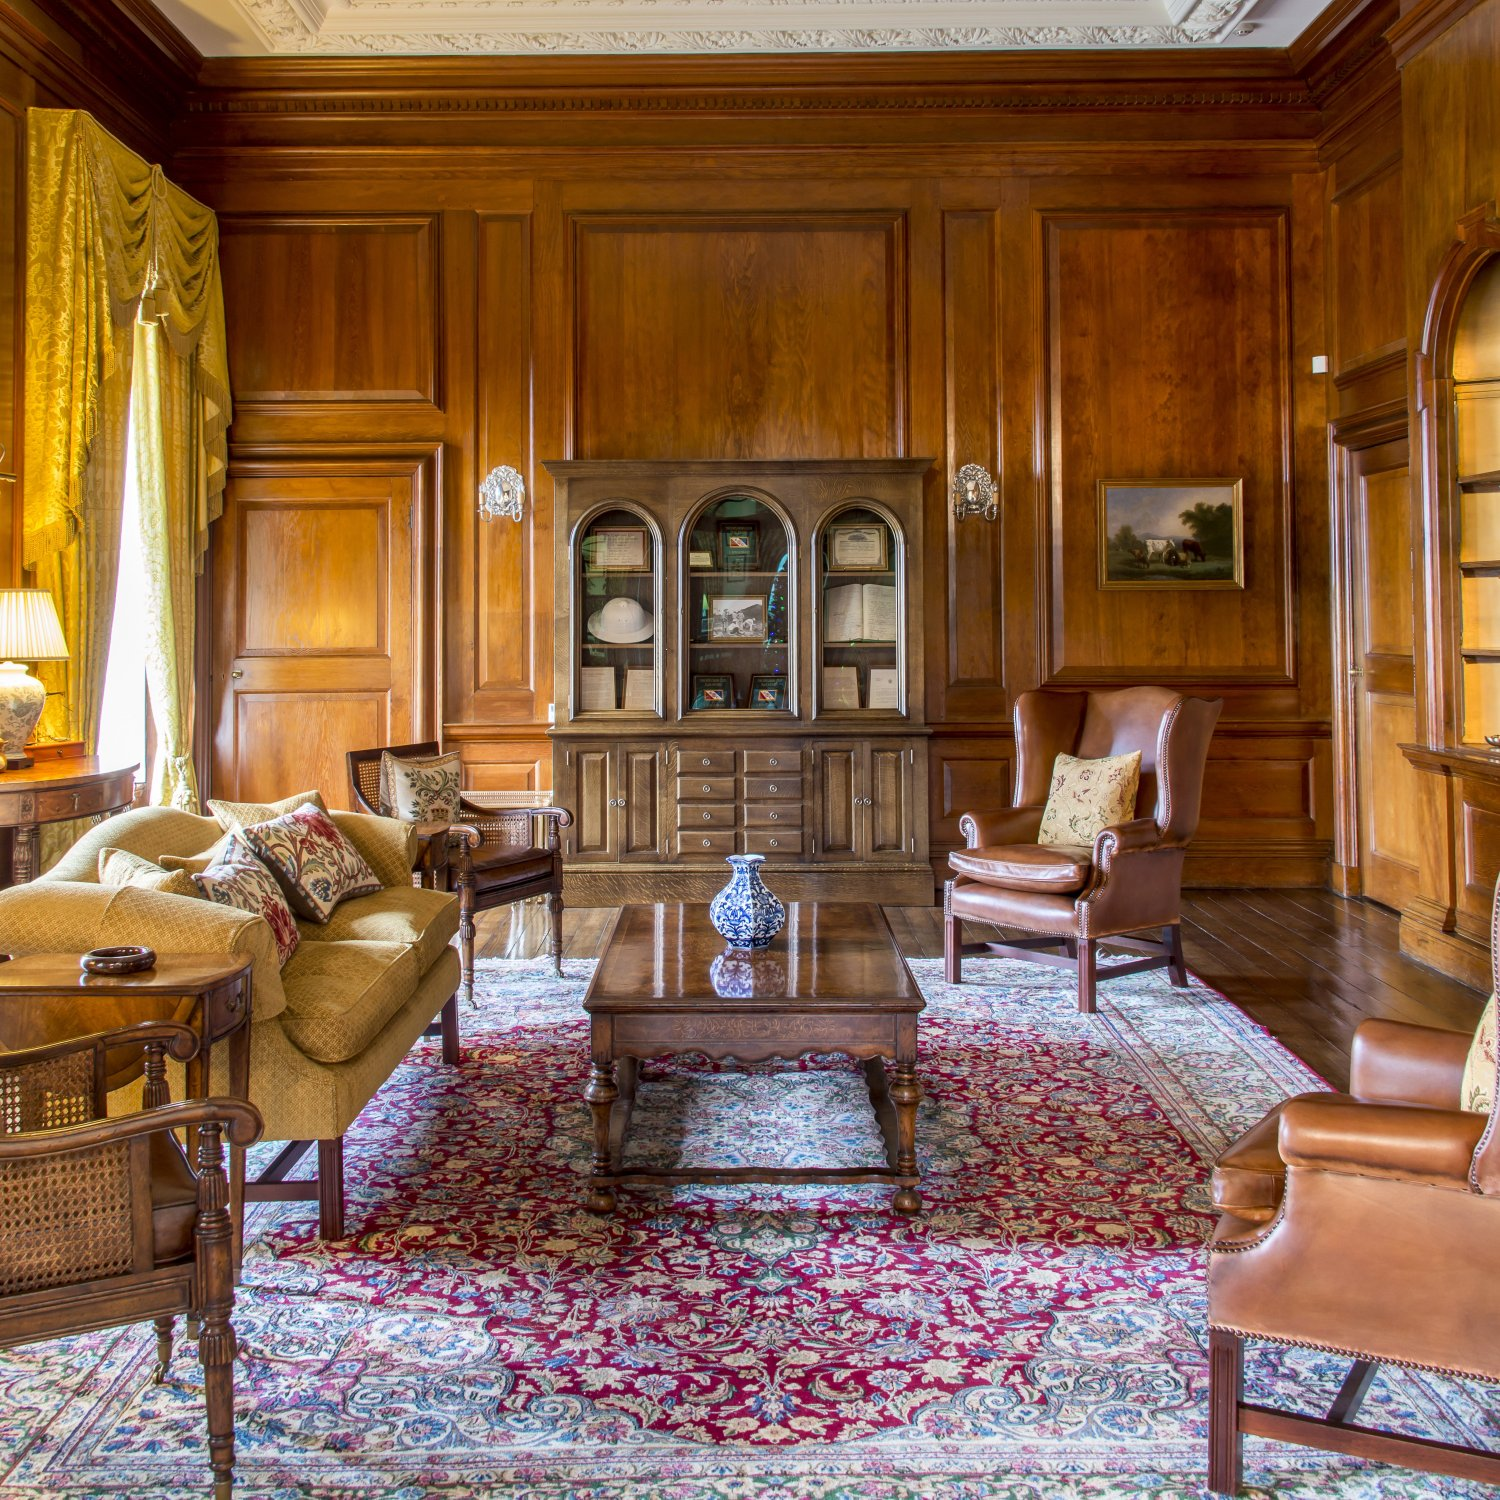 Furniture and furnishings in the Drawing Room